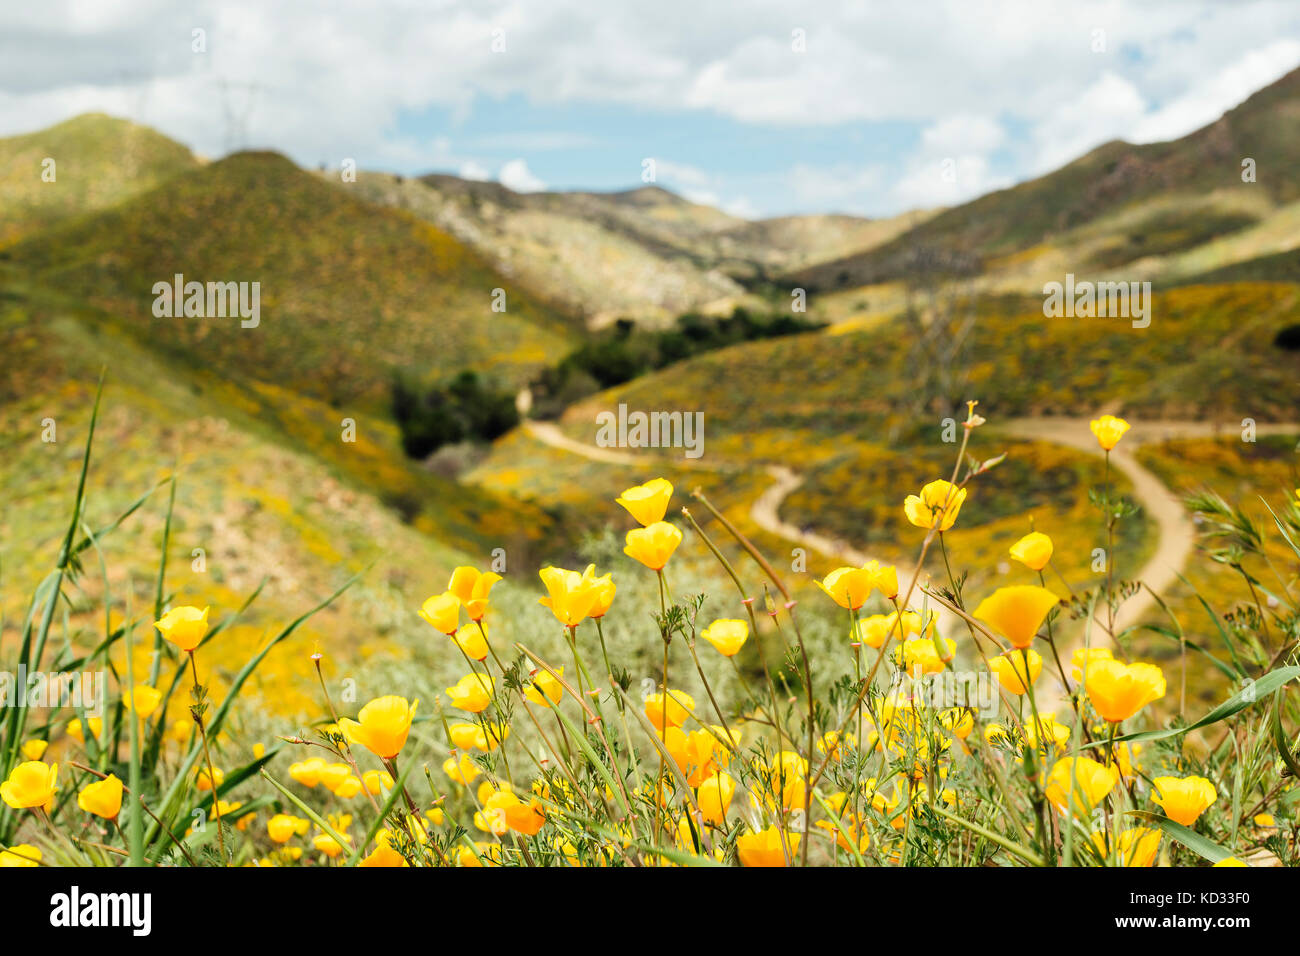 Close up of yellow californian poppies (Eschscholzia californica) in landscape, North Elsinore, California, USA - Stock Image